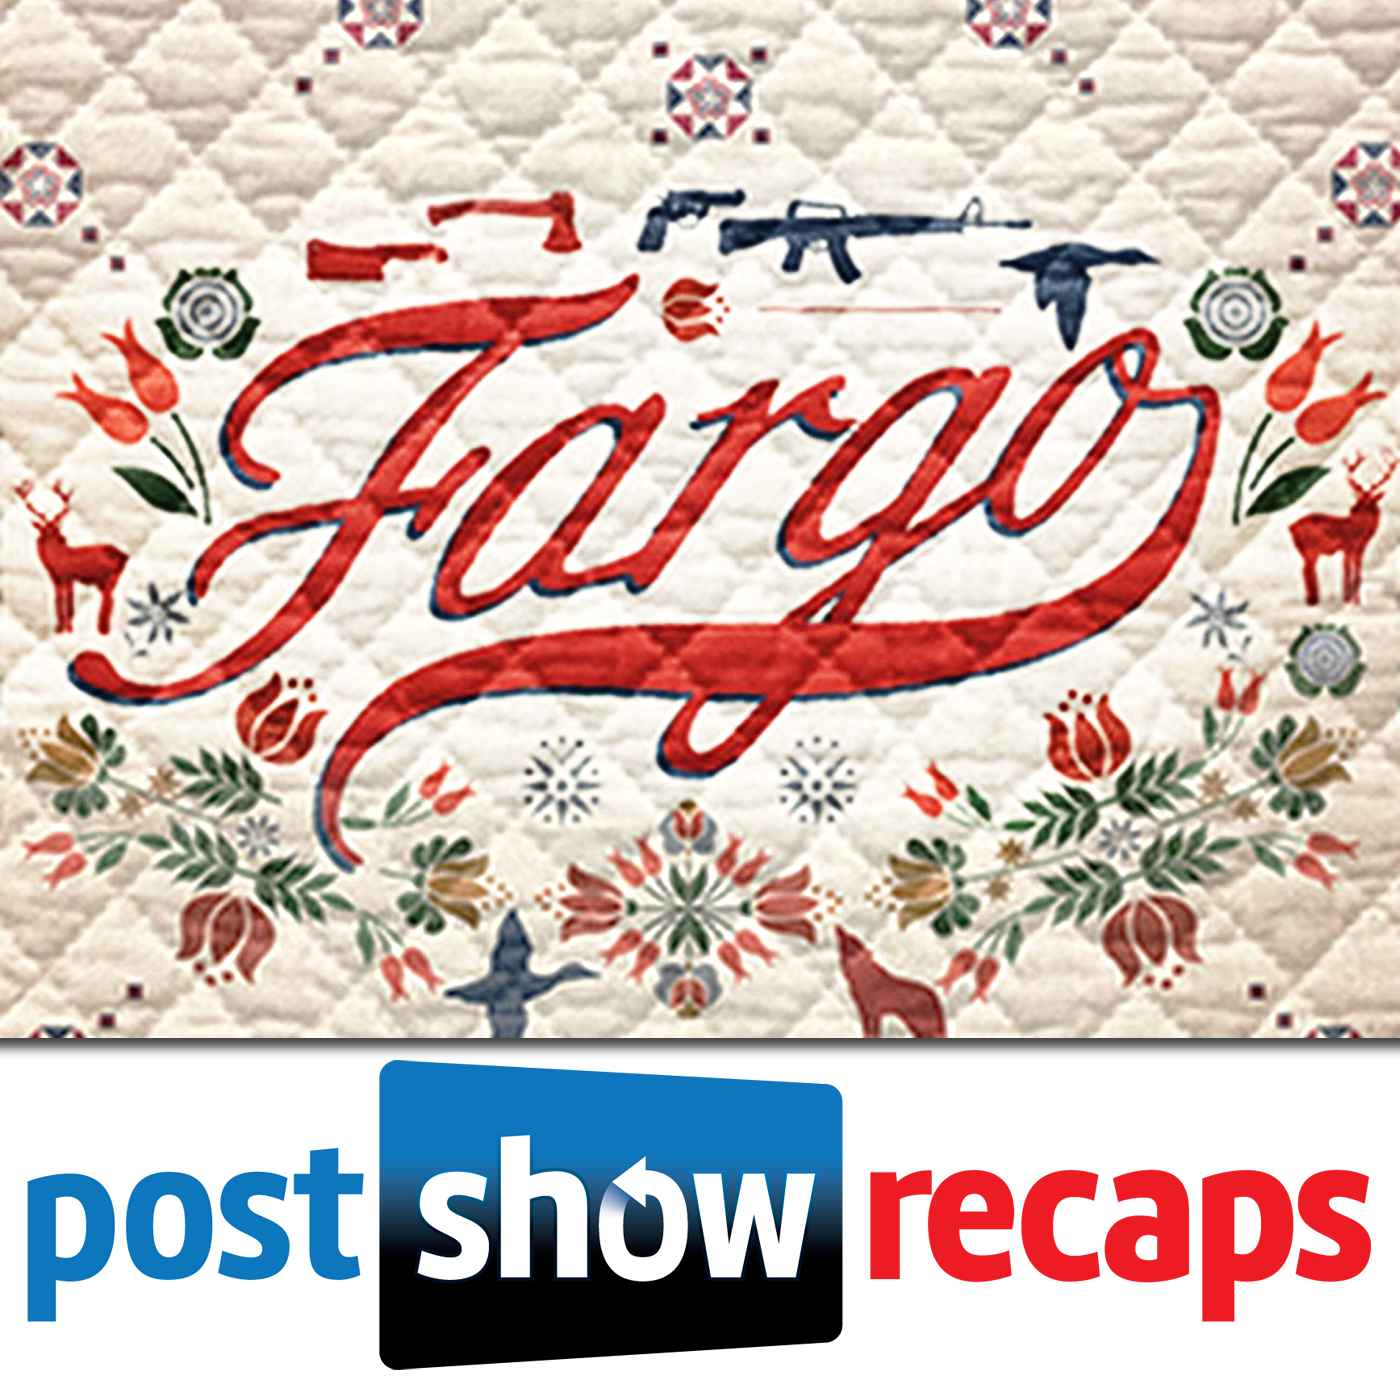 Fargo | Post Show Recaps of the FX Series